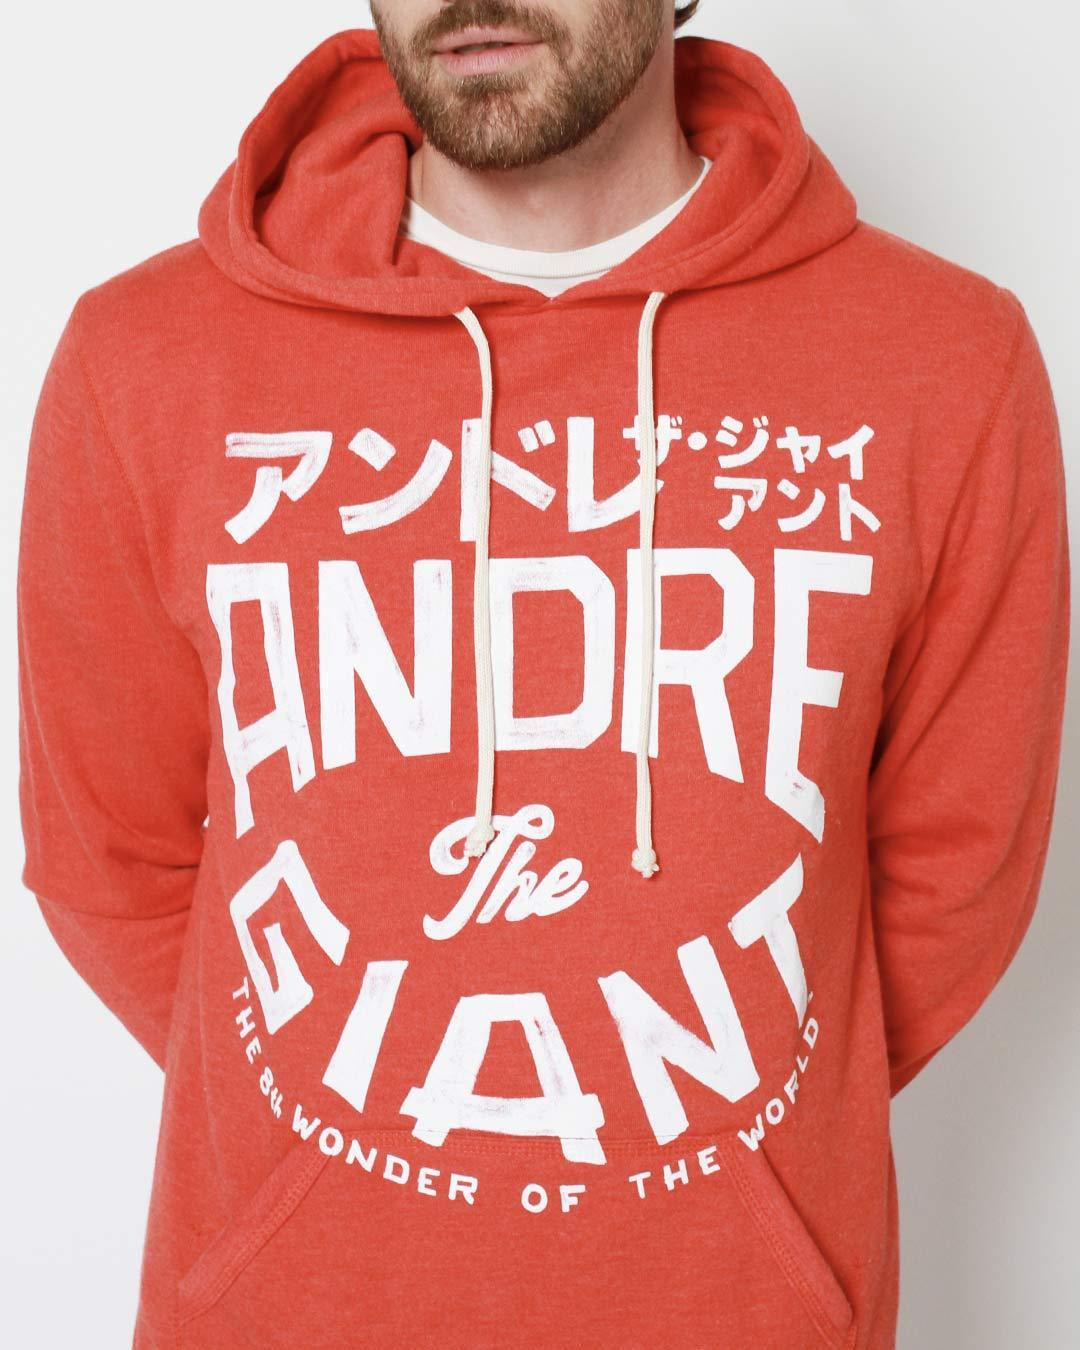 Andre the Giant 8th Wonder Pullover Hoody